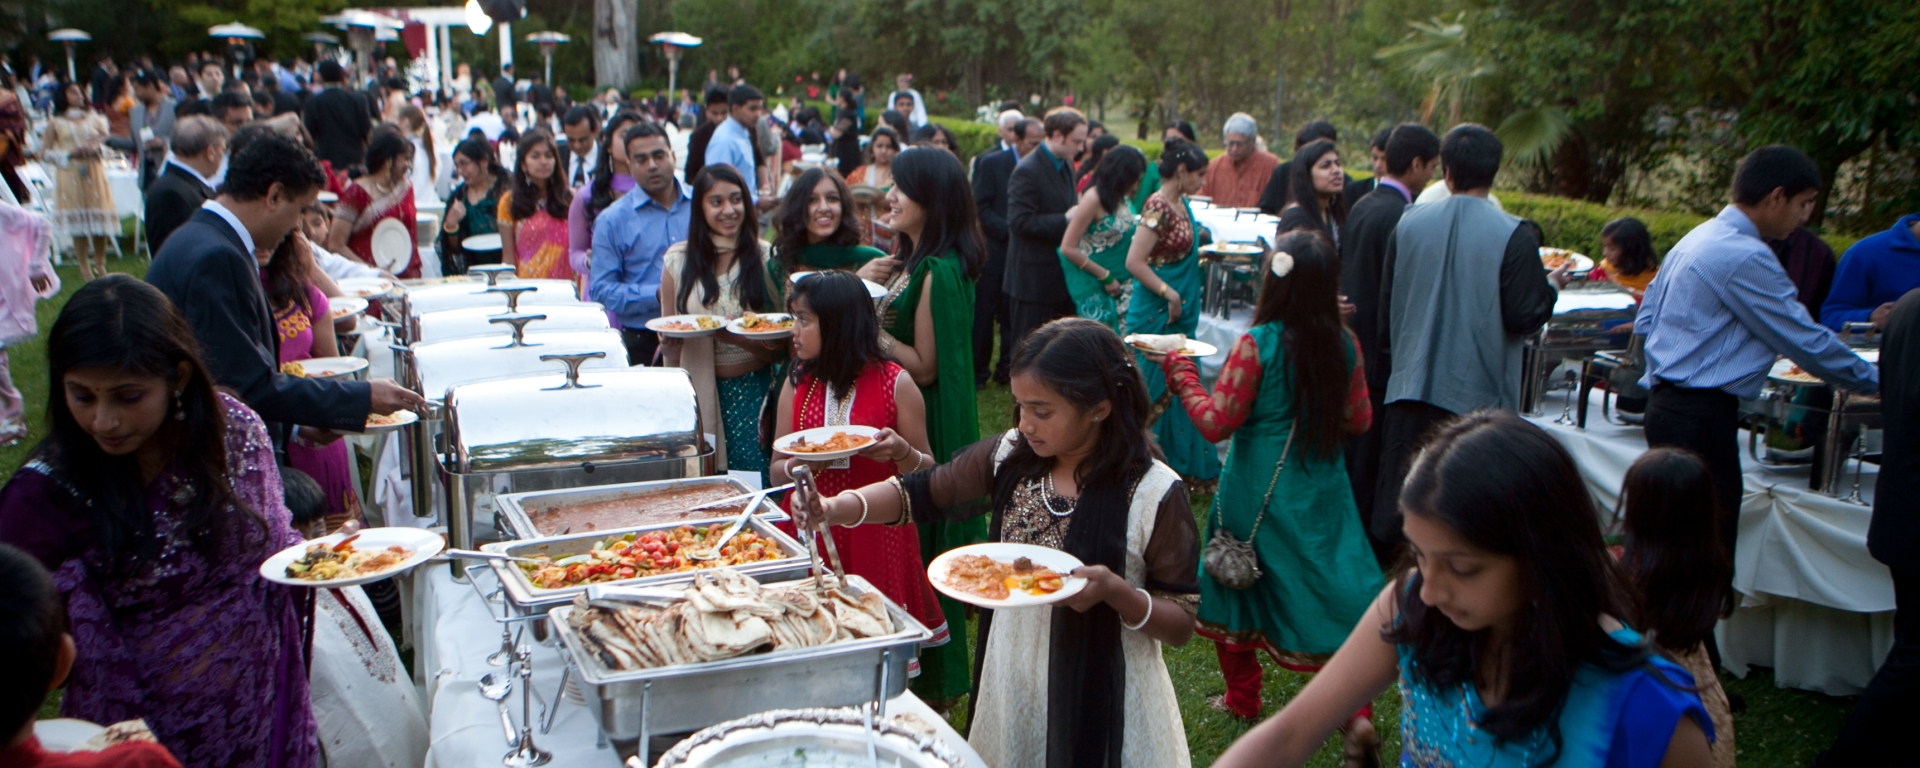 Guests getting dinner in the buffet line at an outdoor Indian wedding reception.